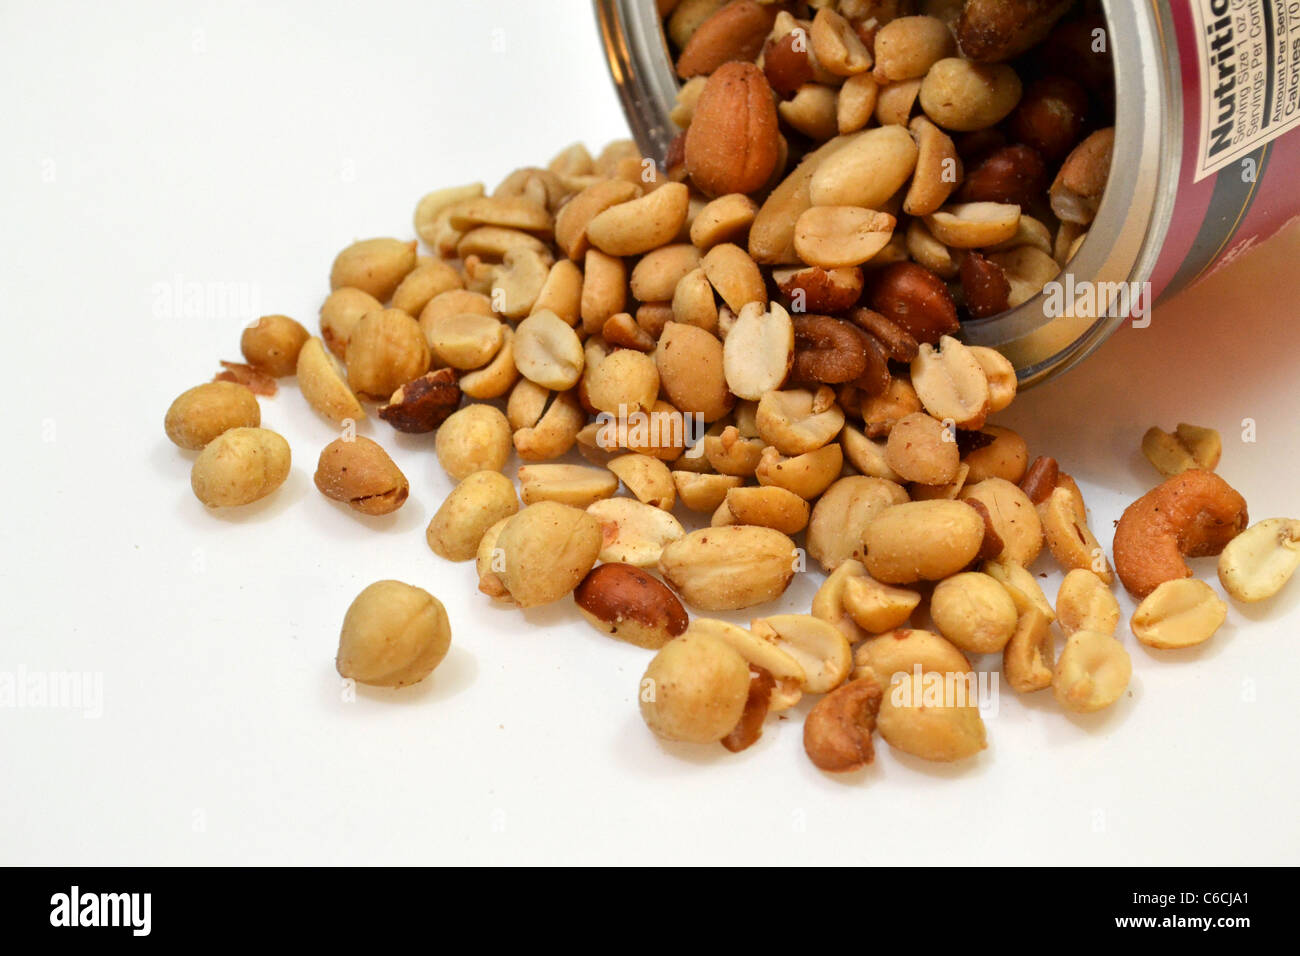 A open can of mixed nuts lays on it's side. Stock Photo